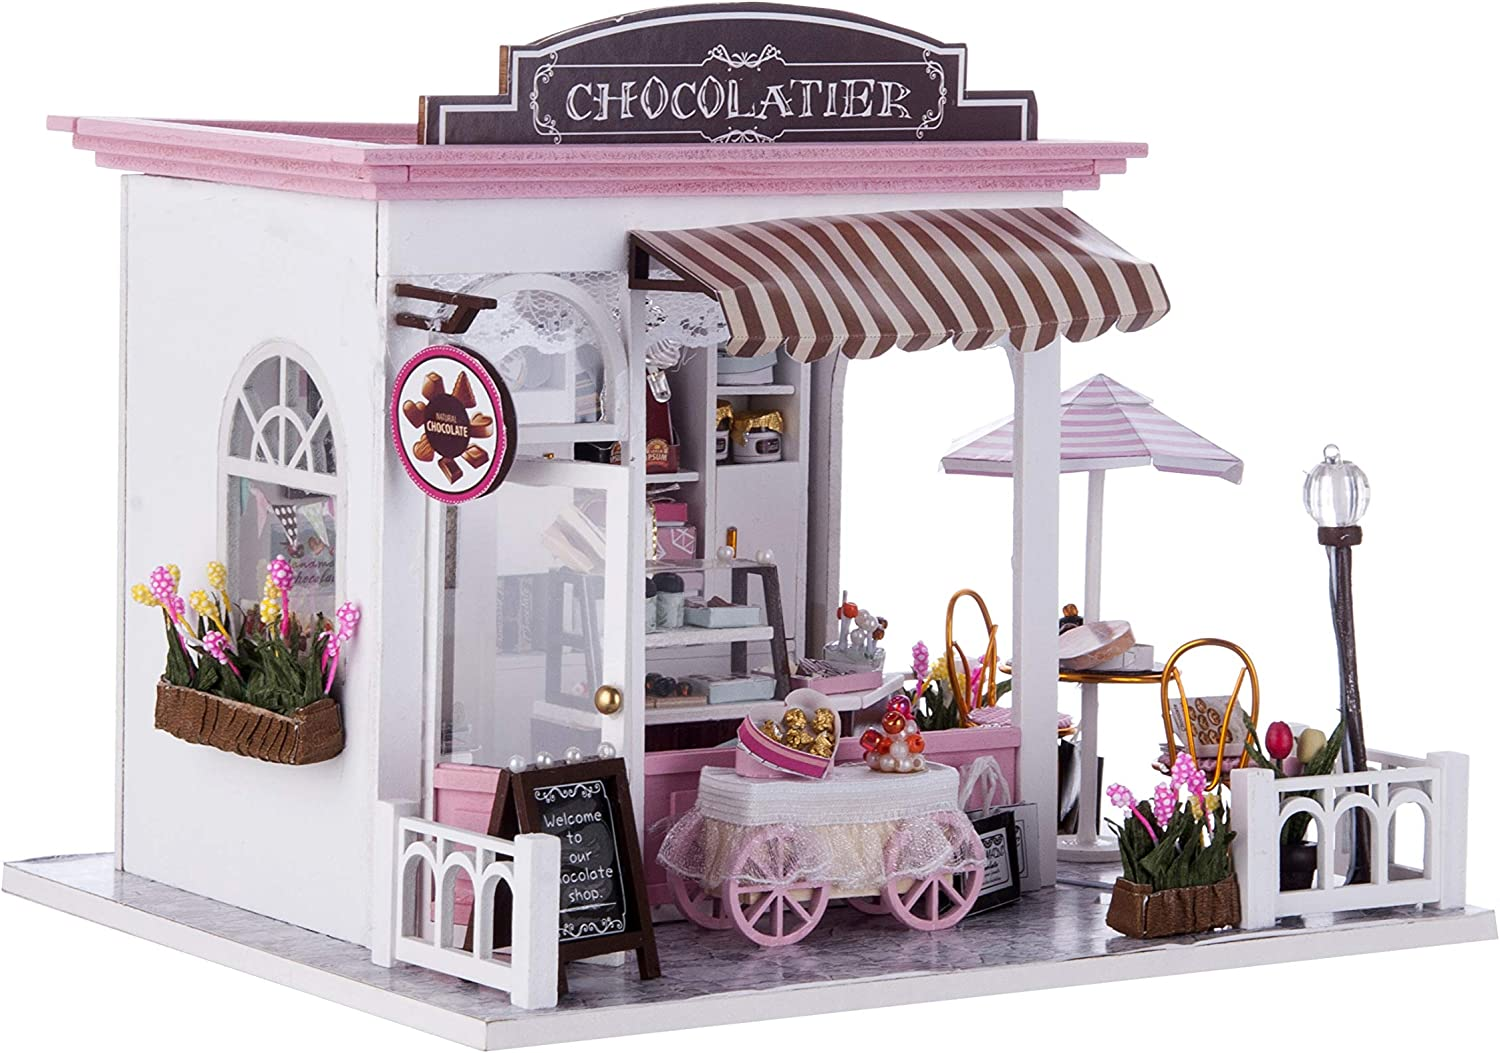 TORCH-CN Miniature Dollhouse Kit Decorations with Lights and Furnitures DIY House Craft Kits House Model Best Birthdays Gifts for Boys and Girls (Chocolatier)